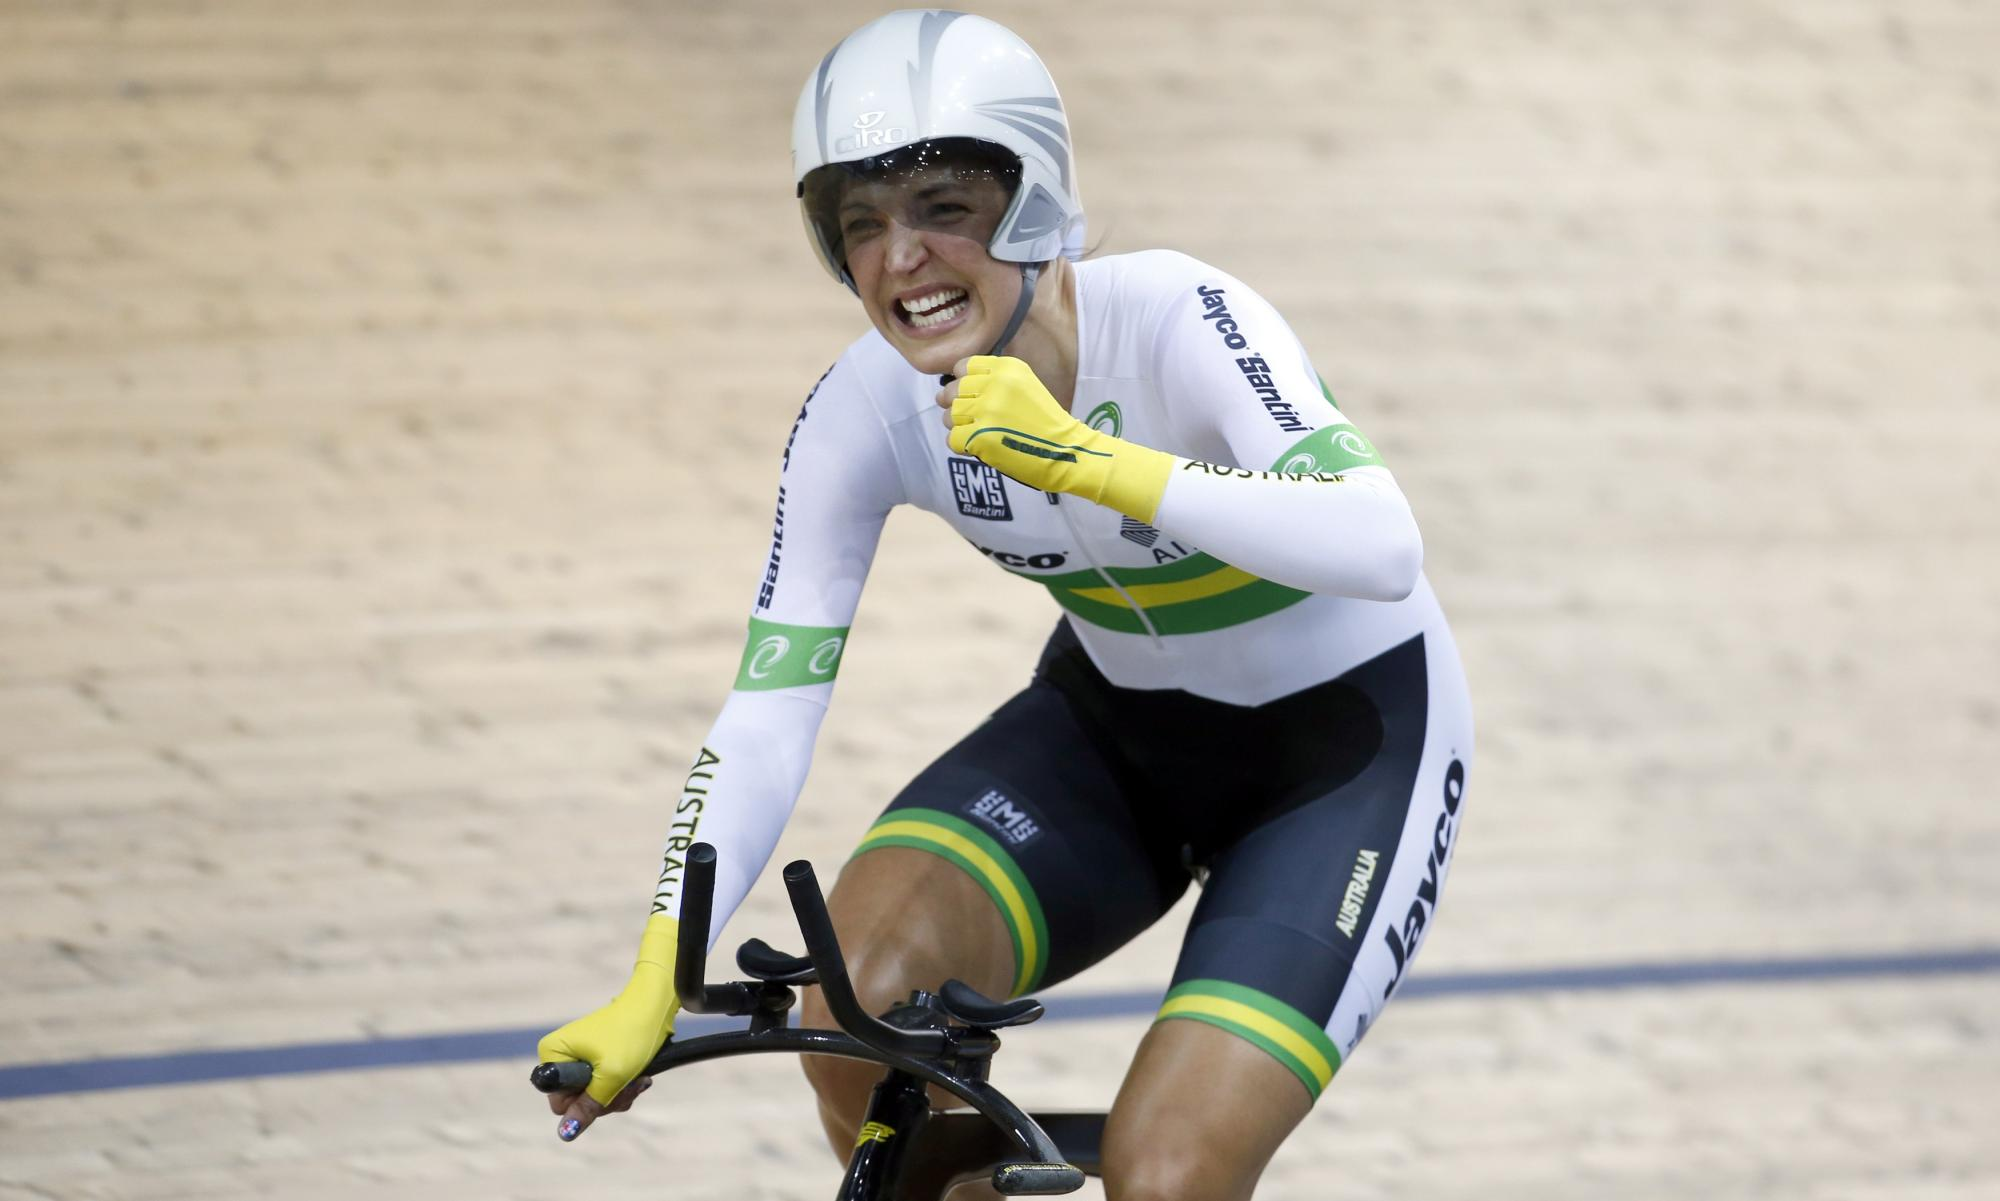 2015 Track World Championships – Paris